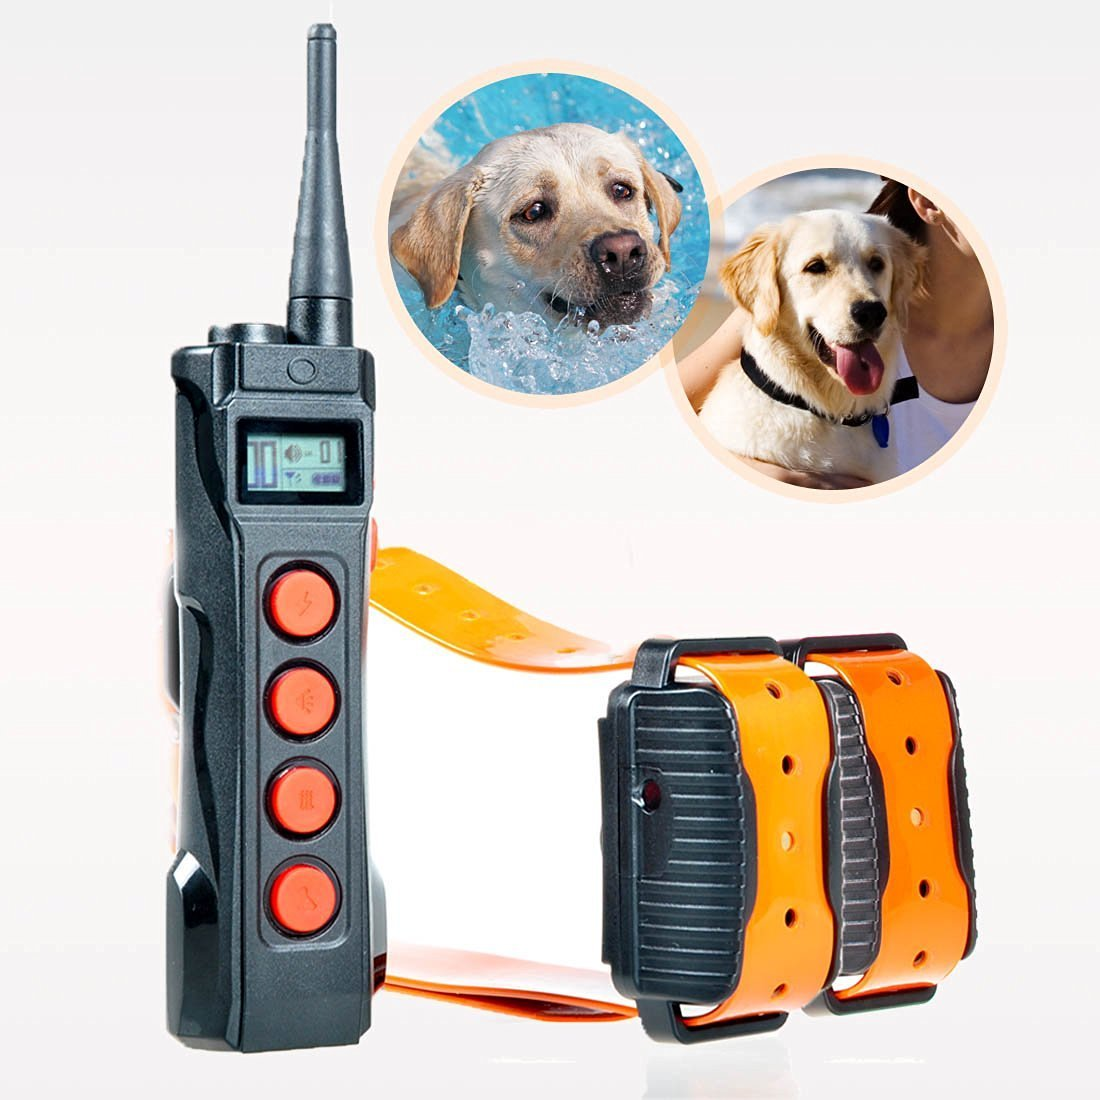 Aetertek Remote Dog Shock Collar 1 year warranty 1000M range 5 Modes (Shock, Light, Vibration , Beep & Auto anti bark) Safe For All Size Dogs Rechargeable & Waterproof trainer (For 2 dogs)